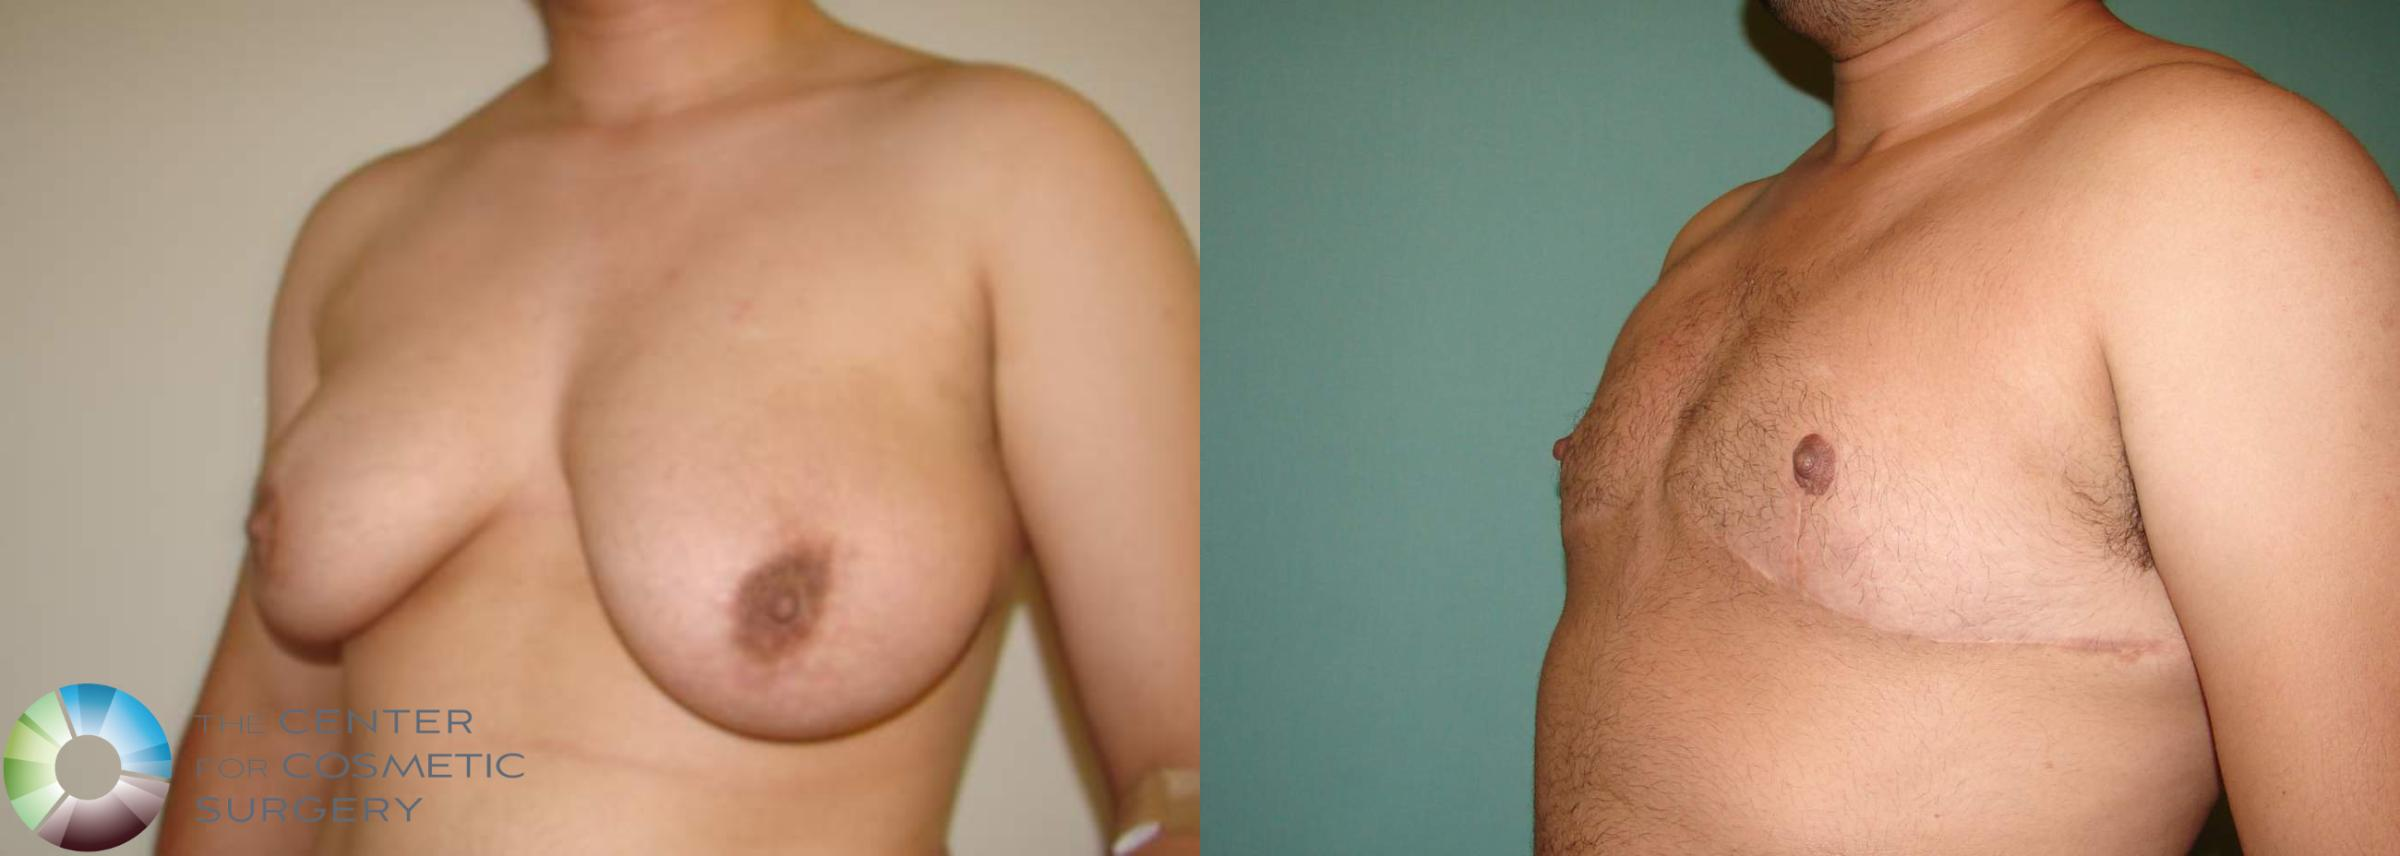 FTM Top Surgery/Chest Masculinization Case 566 Before & After View #2 | Golden, CO | The Center for Cosmetic Surgery